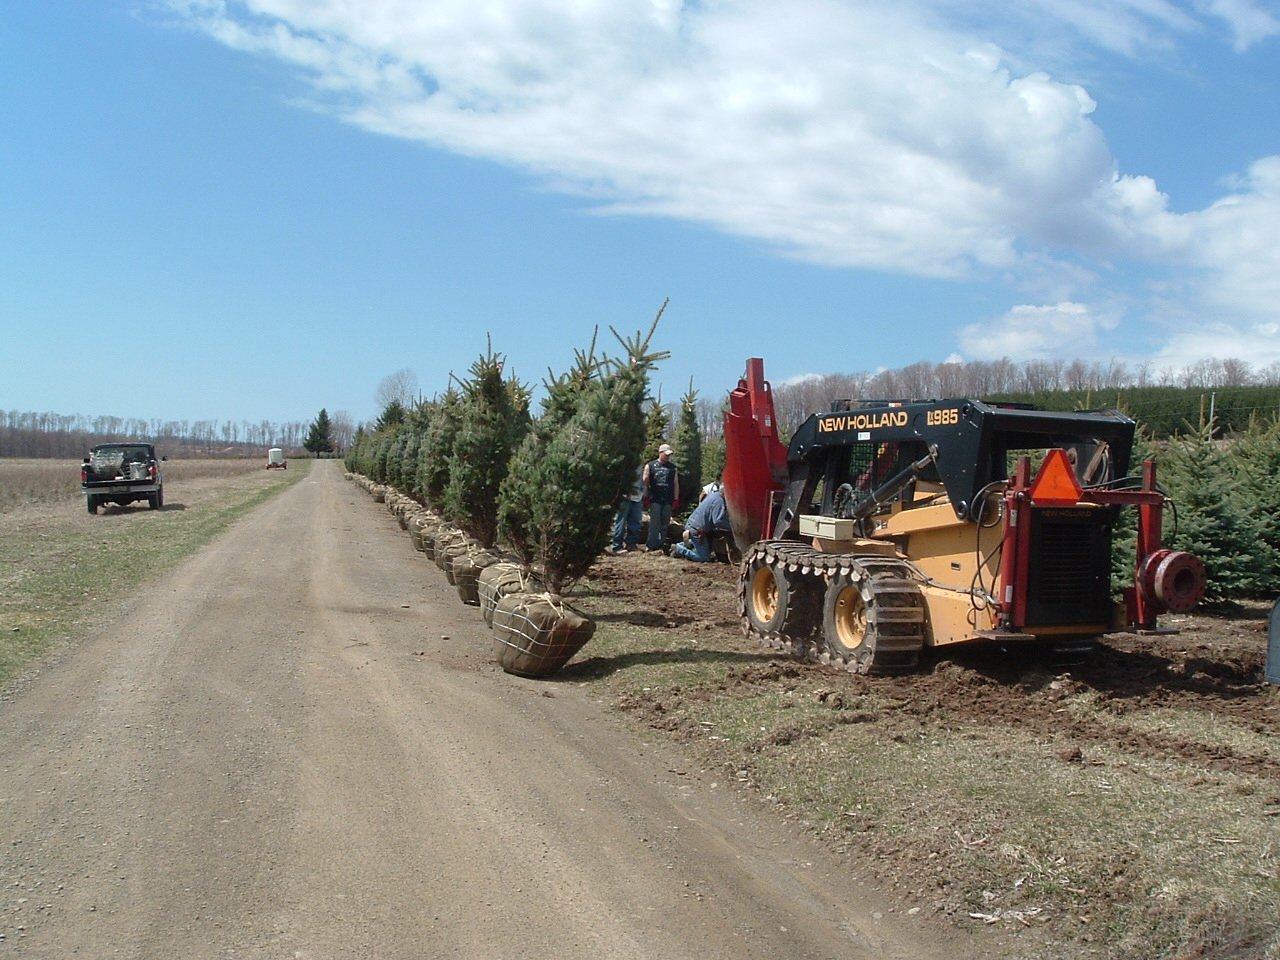 Our crew preparing landscape trees for shipment